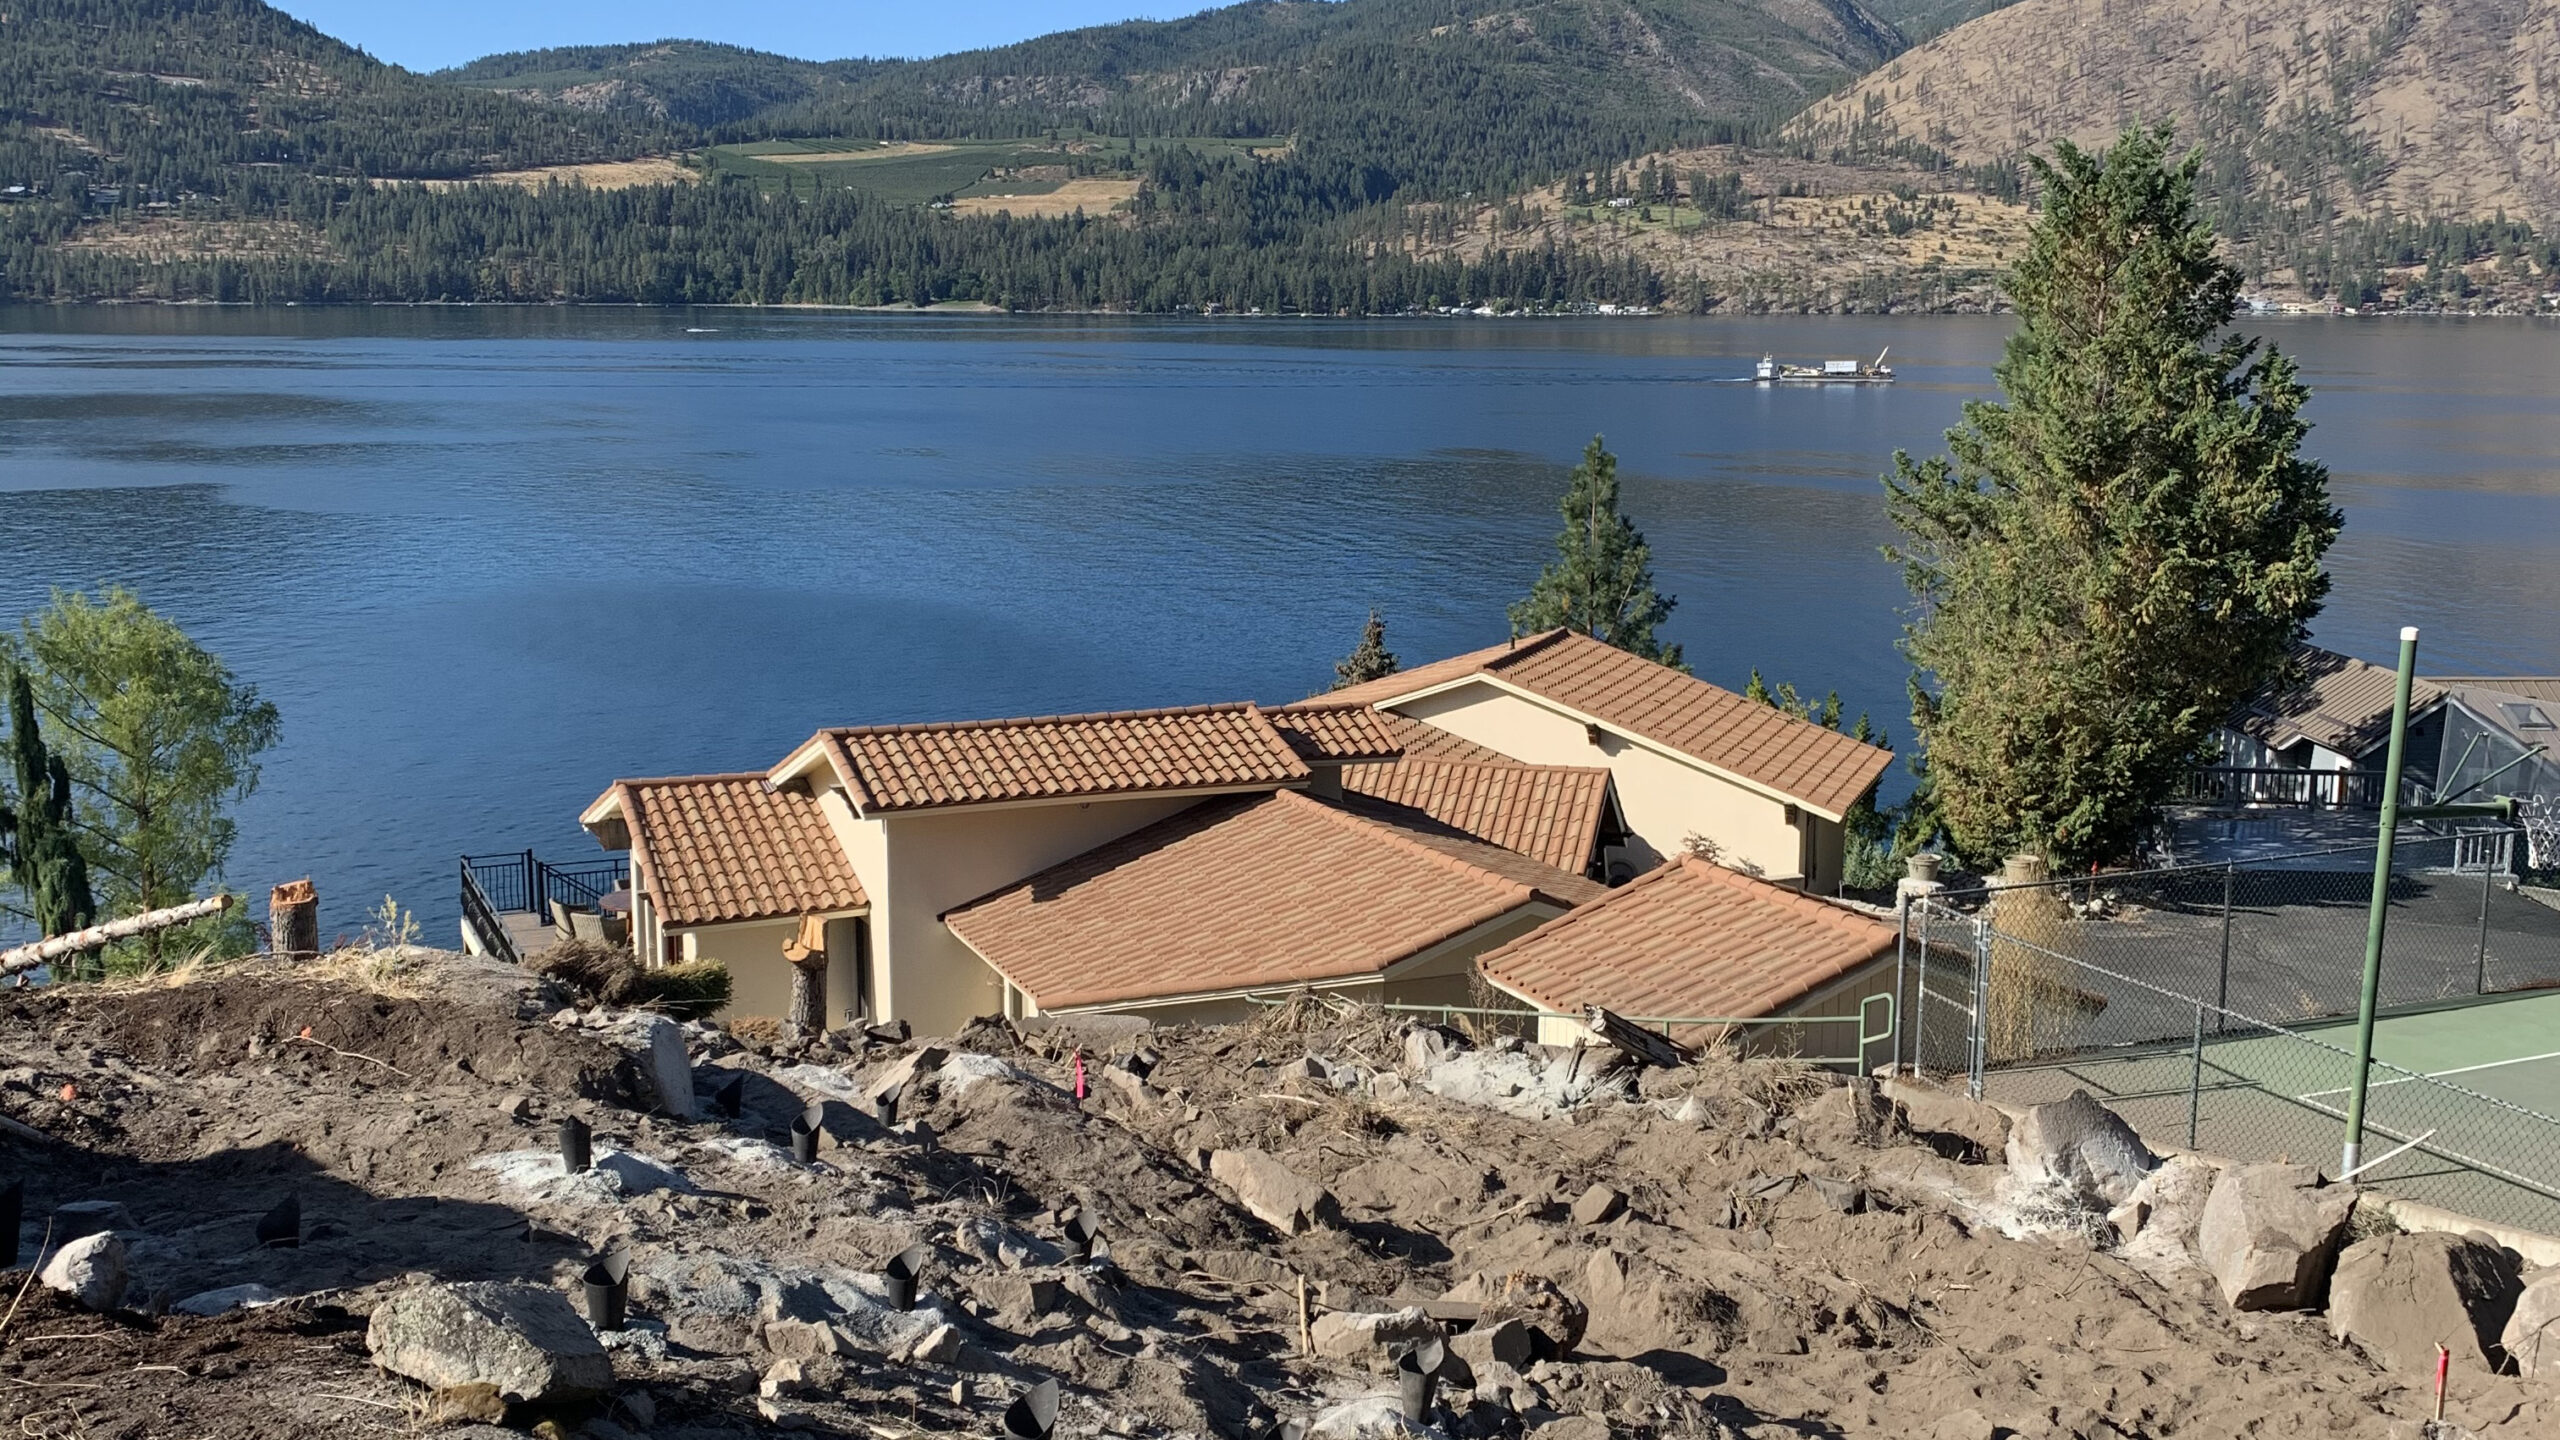 Lake Chelan Residential Project